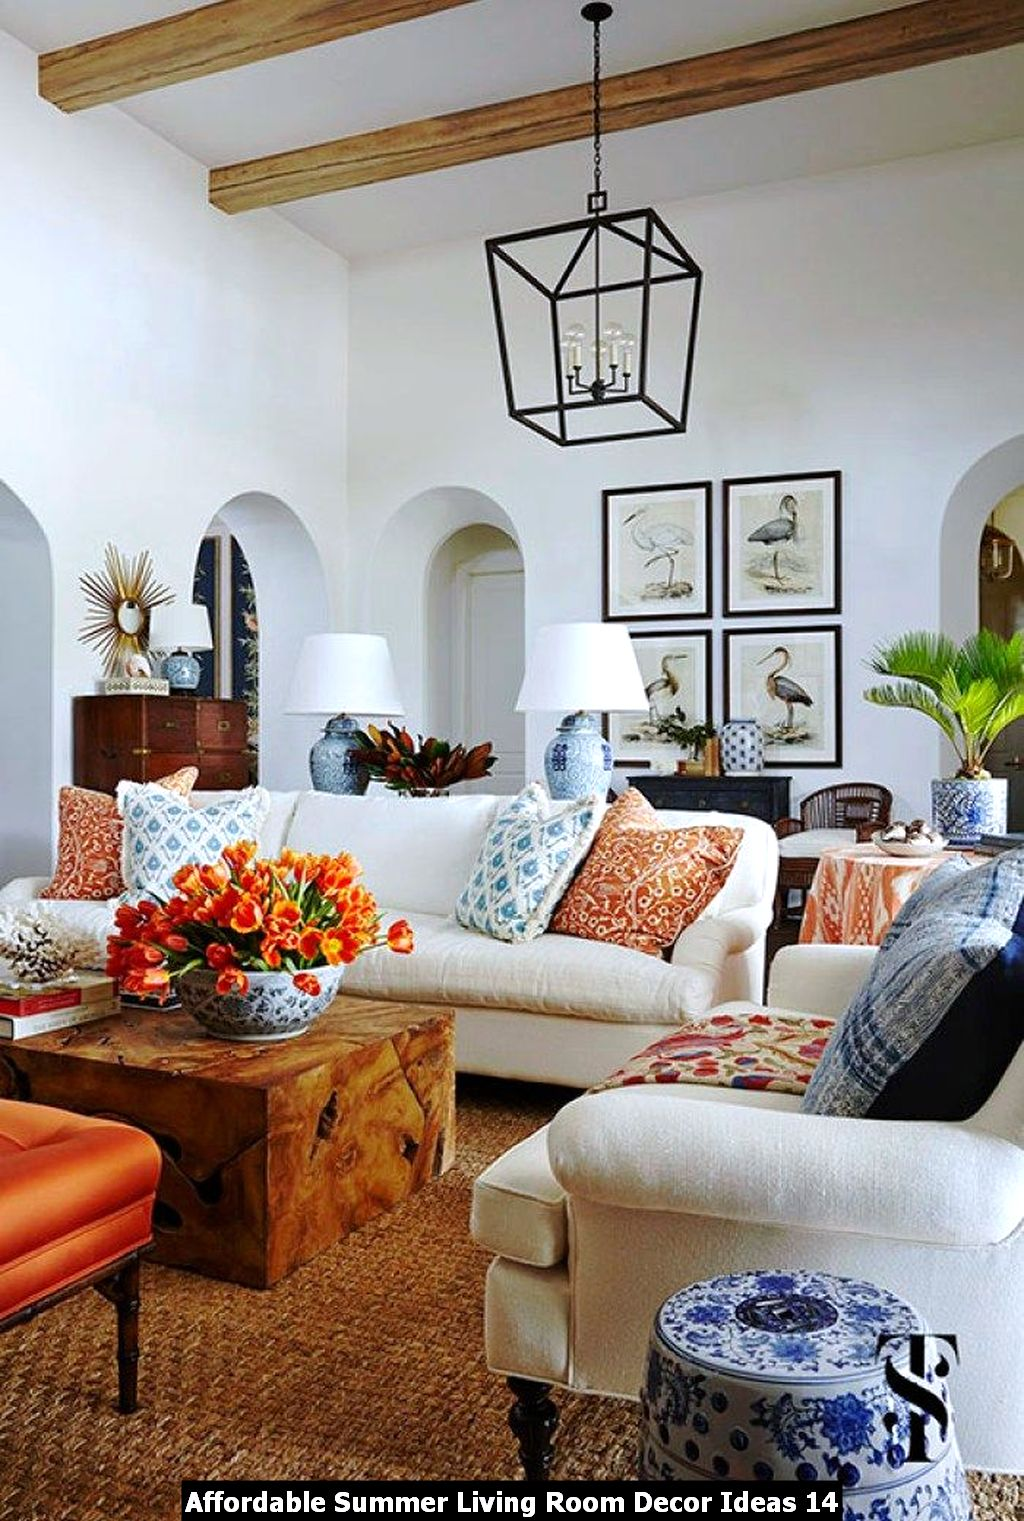 Affordable Summer Living Room Decor Ideas 14